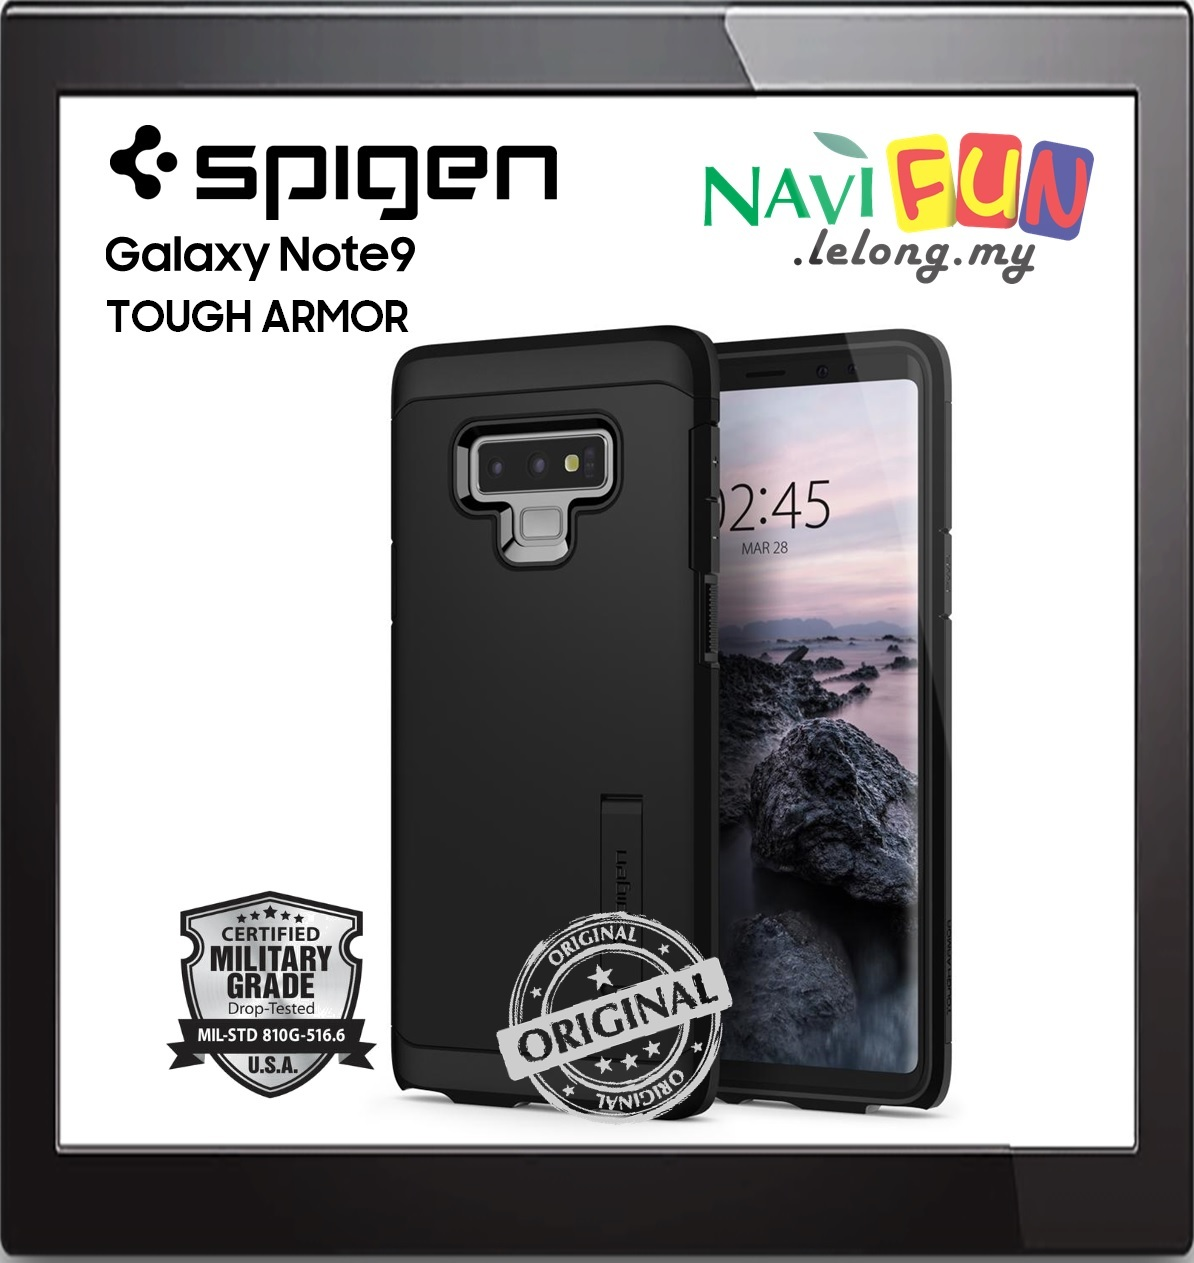 ... Tough Armor case for Samsung GALAXY Note 9. SGPTAN9.jpg